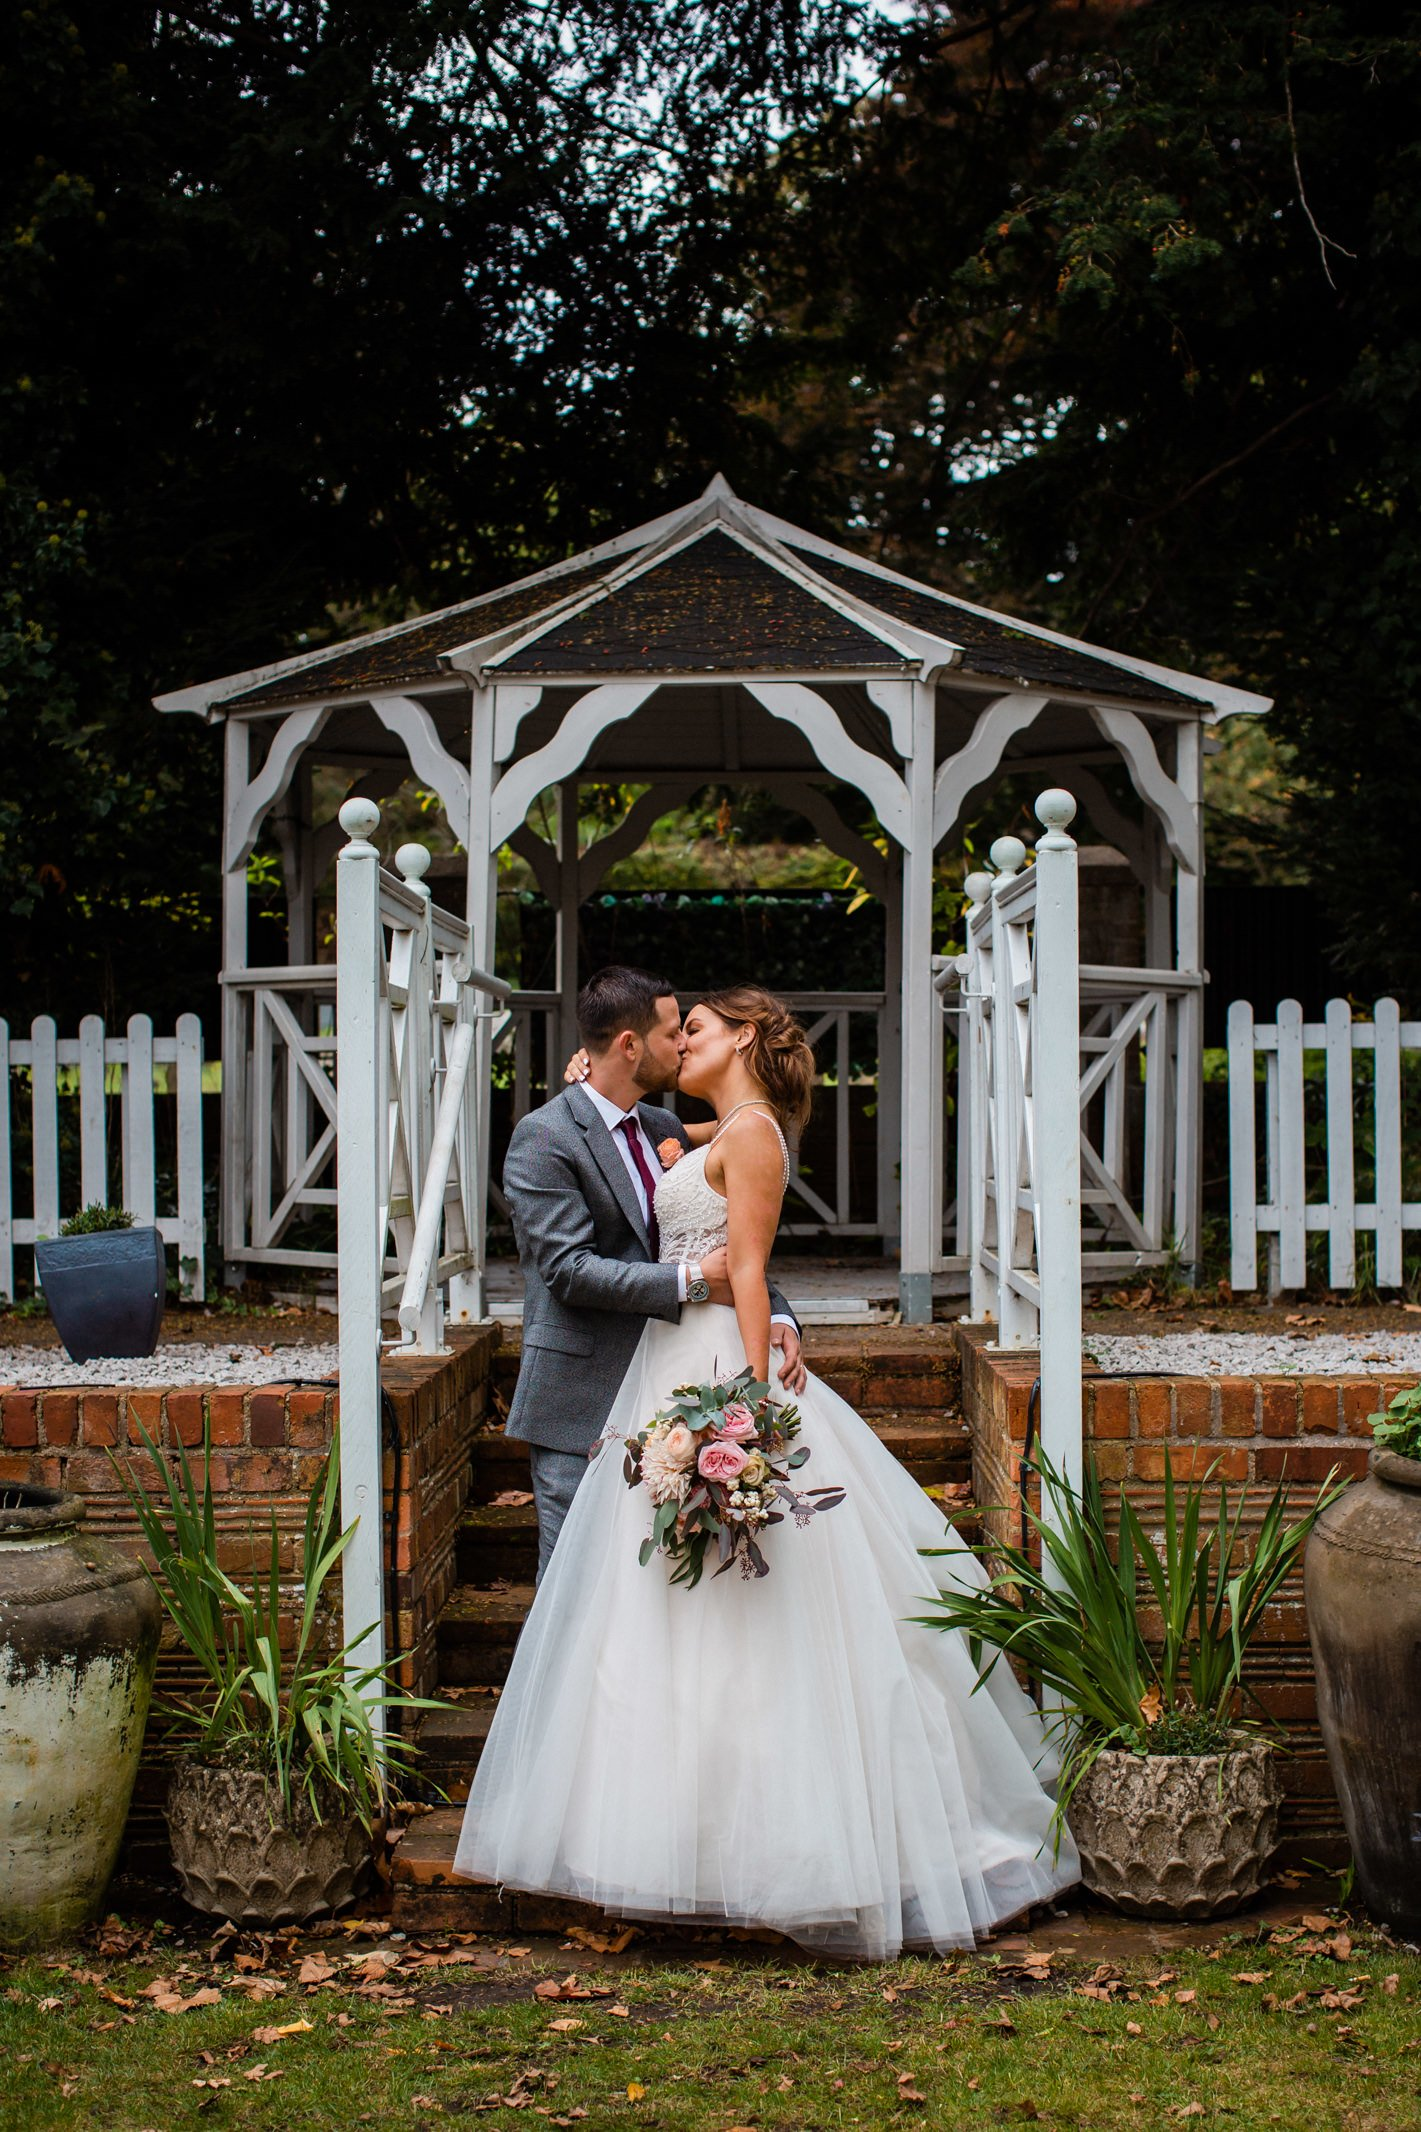 The Elephant Pangbourne Wedding - Stunning Kayleigh & Shane 57